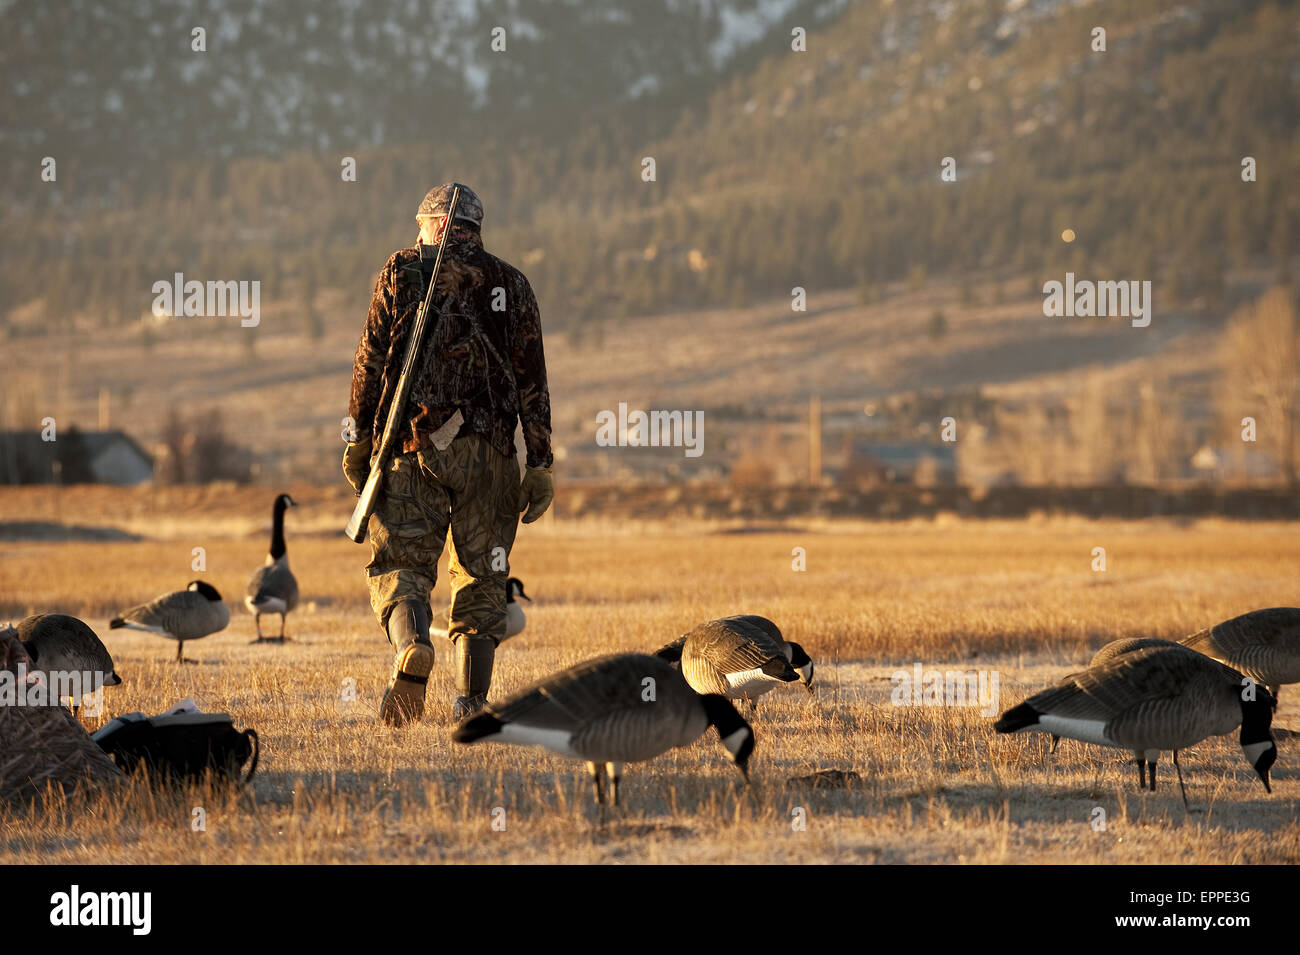 A hunter surveys his decoys while hunting geese in Carson City, NV. - Stock Image